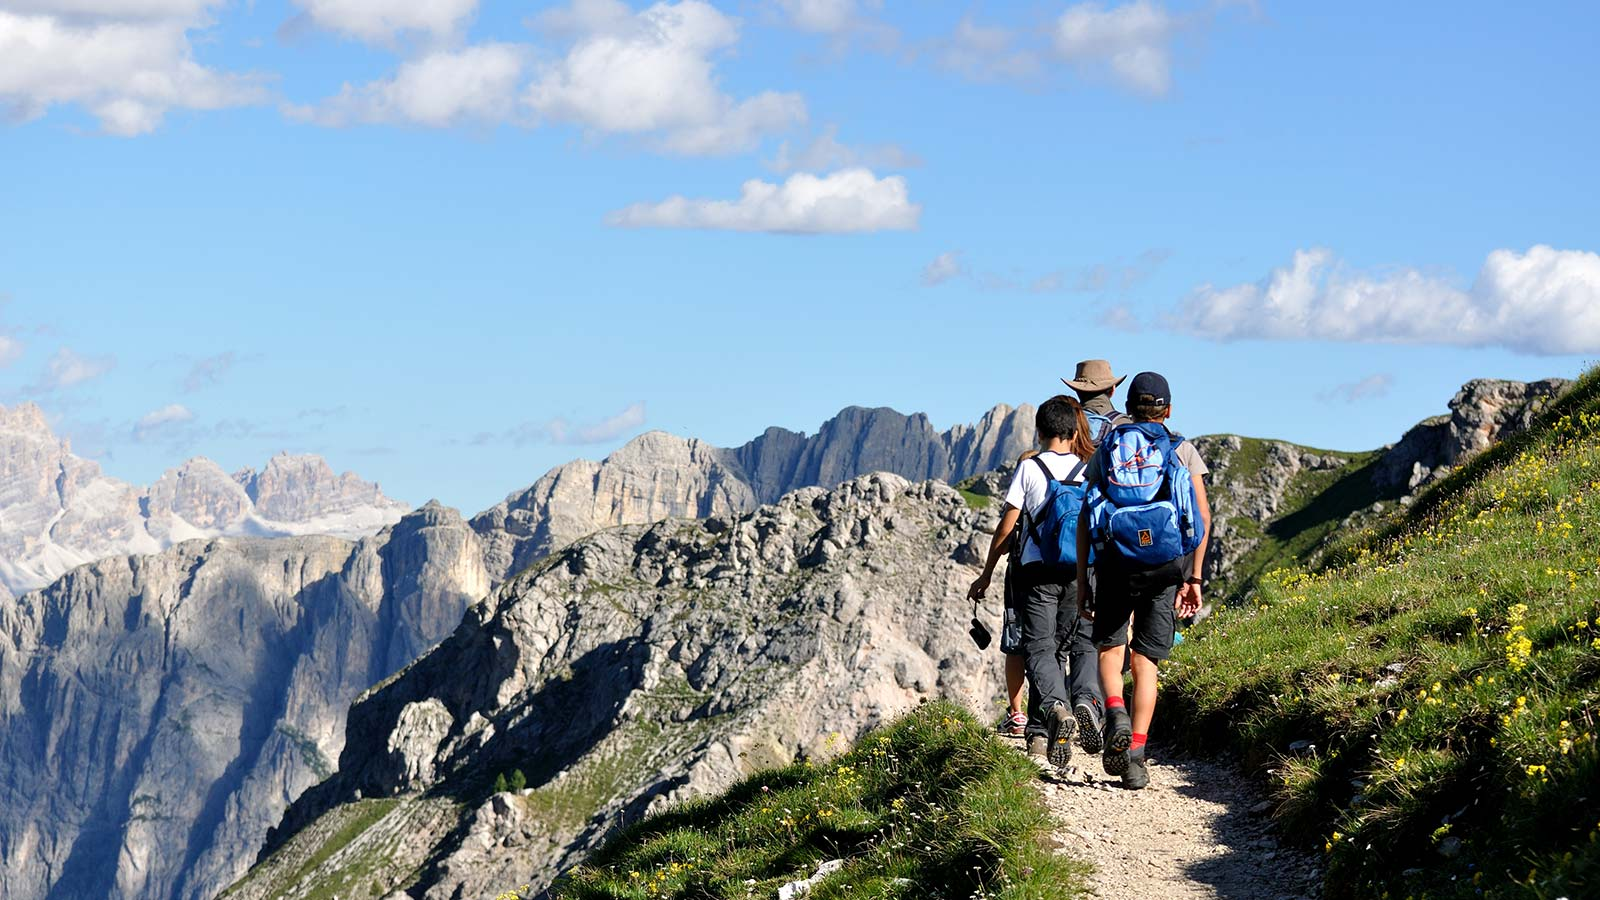 Three hikers on a high mountain path with South Tyrol's Dolomites in the background